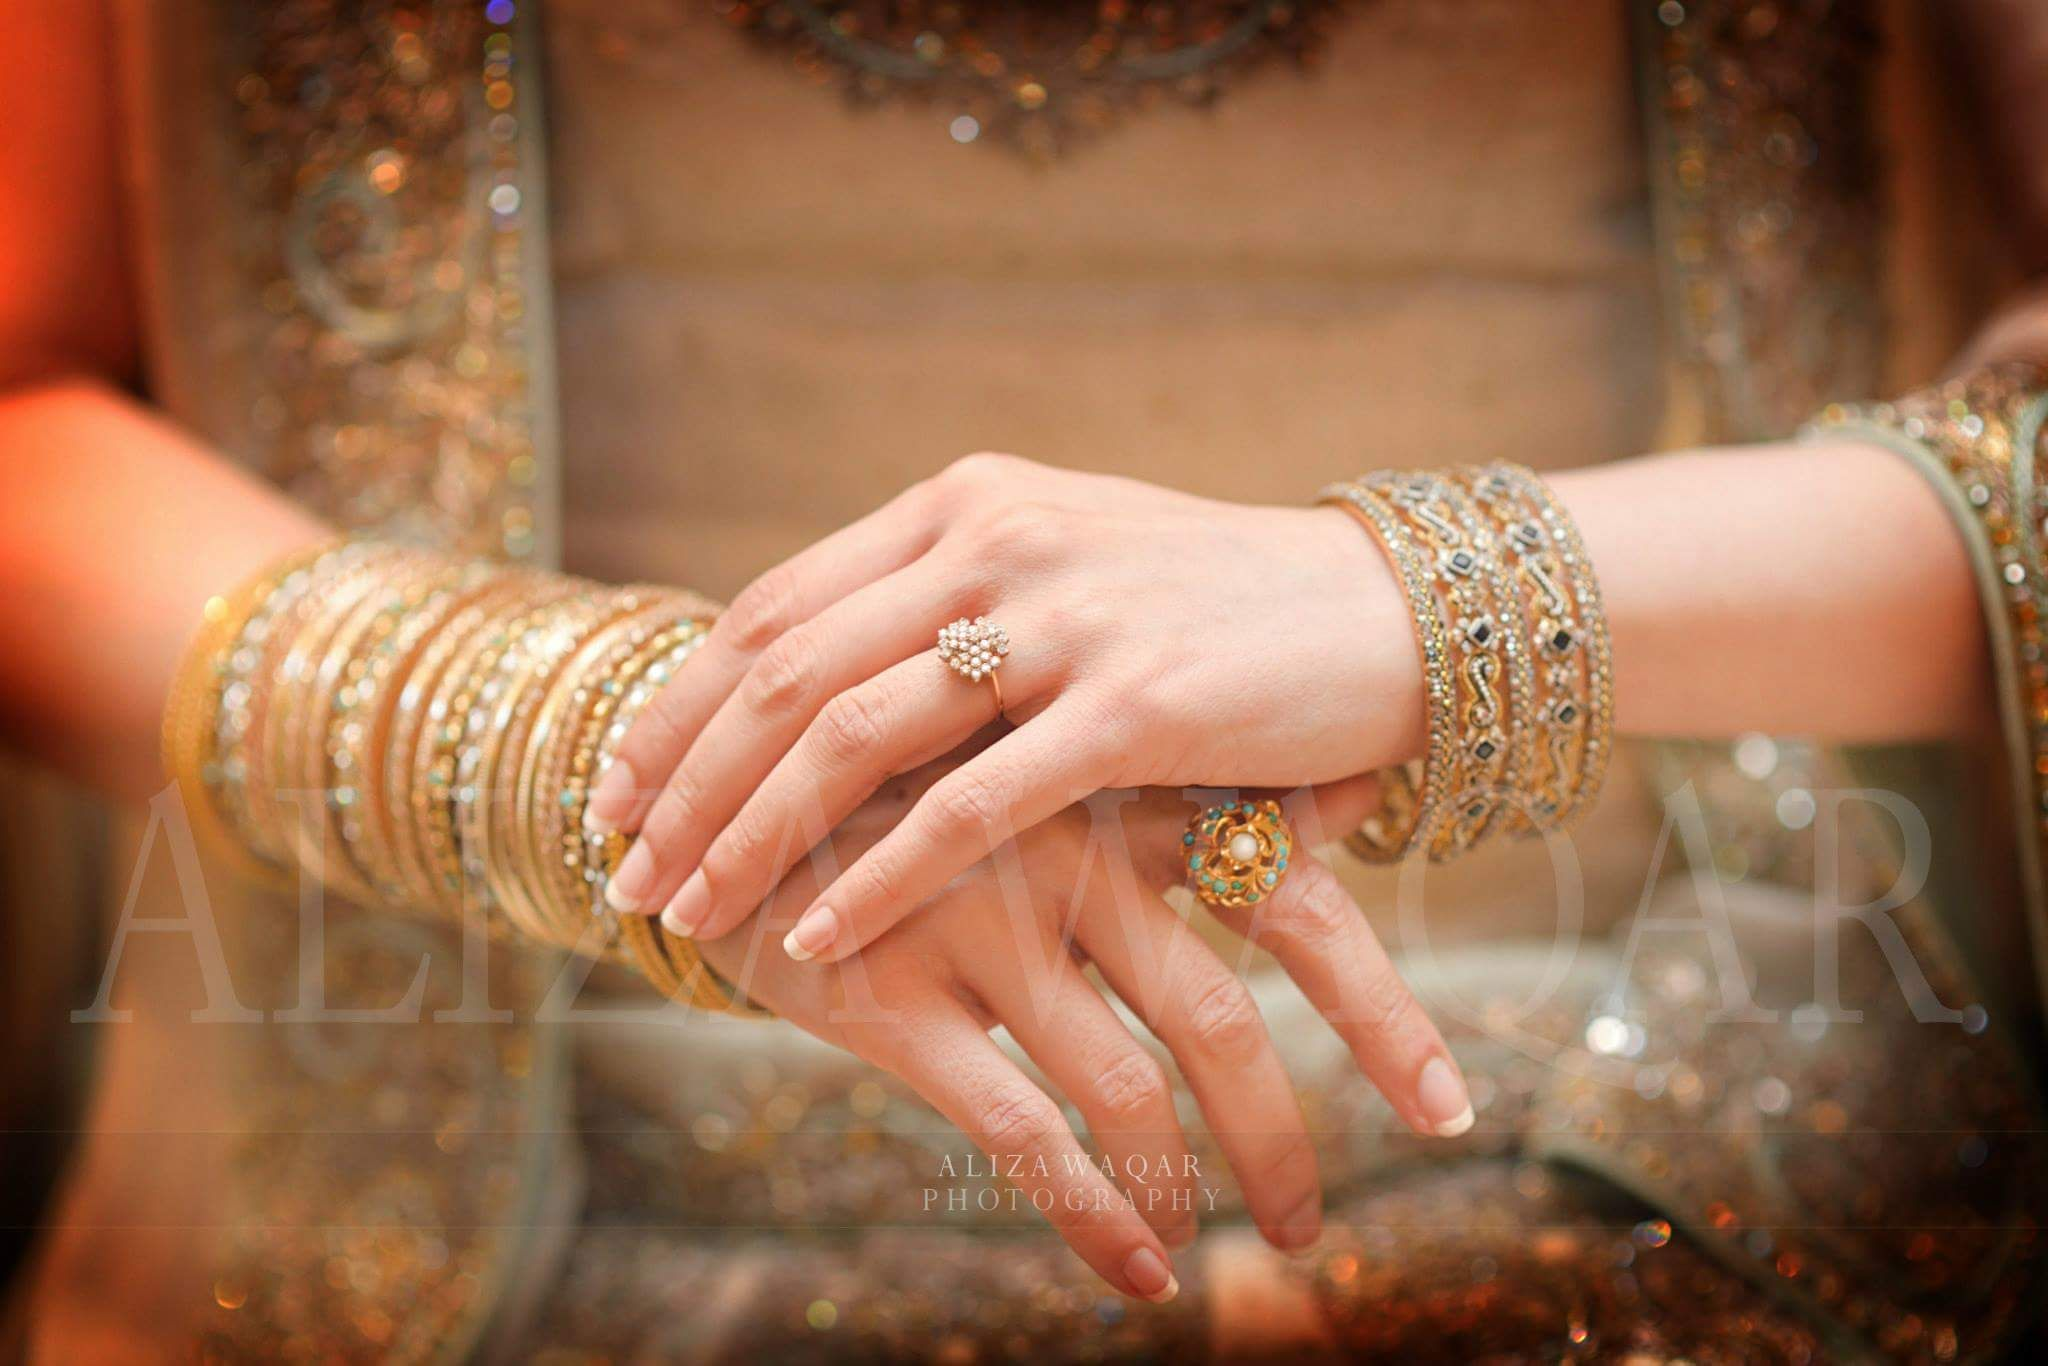 Aliza waqar photography | Simple and beautiful hands | Pinterest ...